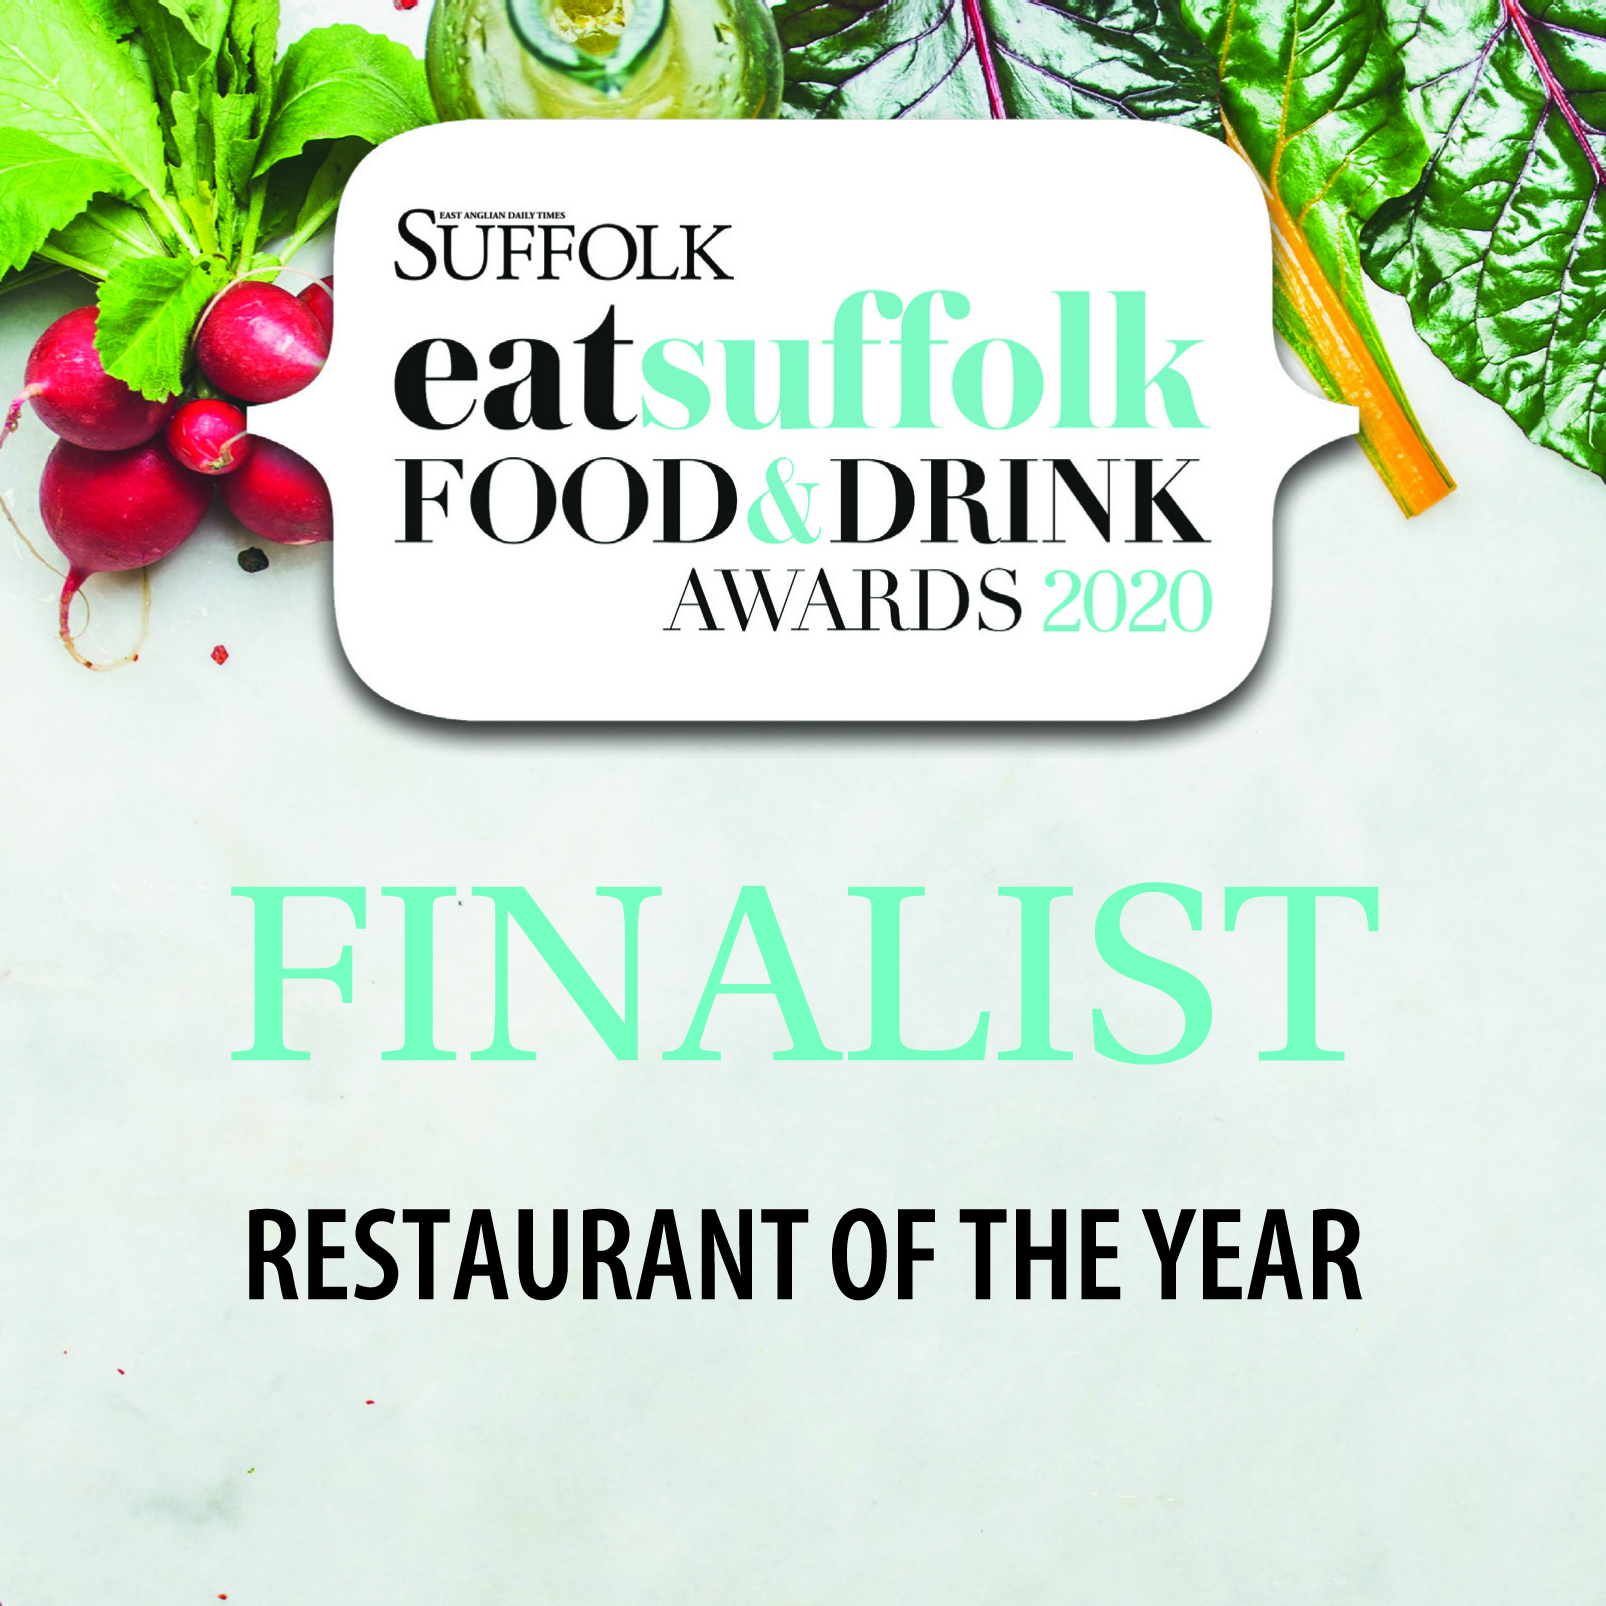 Restaurant of the year finalists!